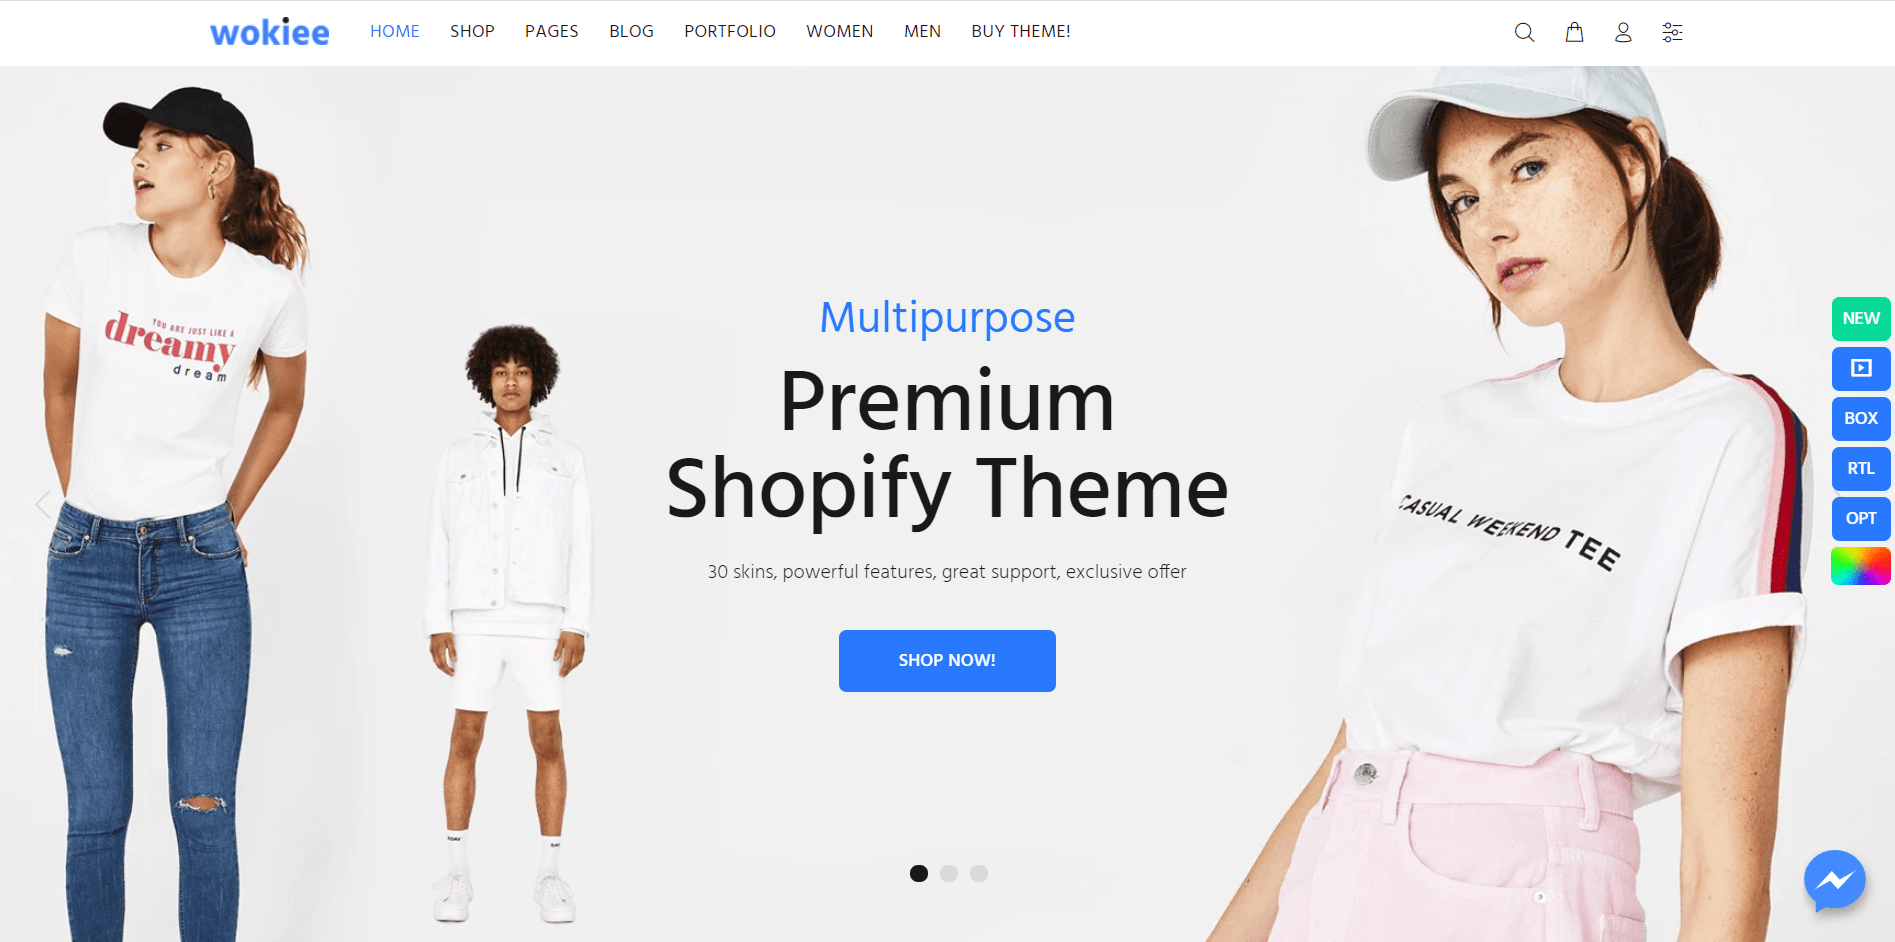 Wookie Shopify theme